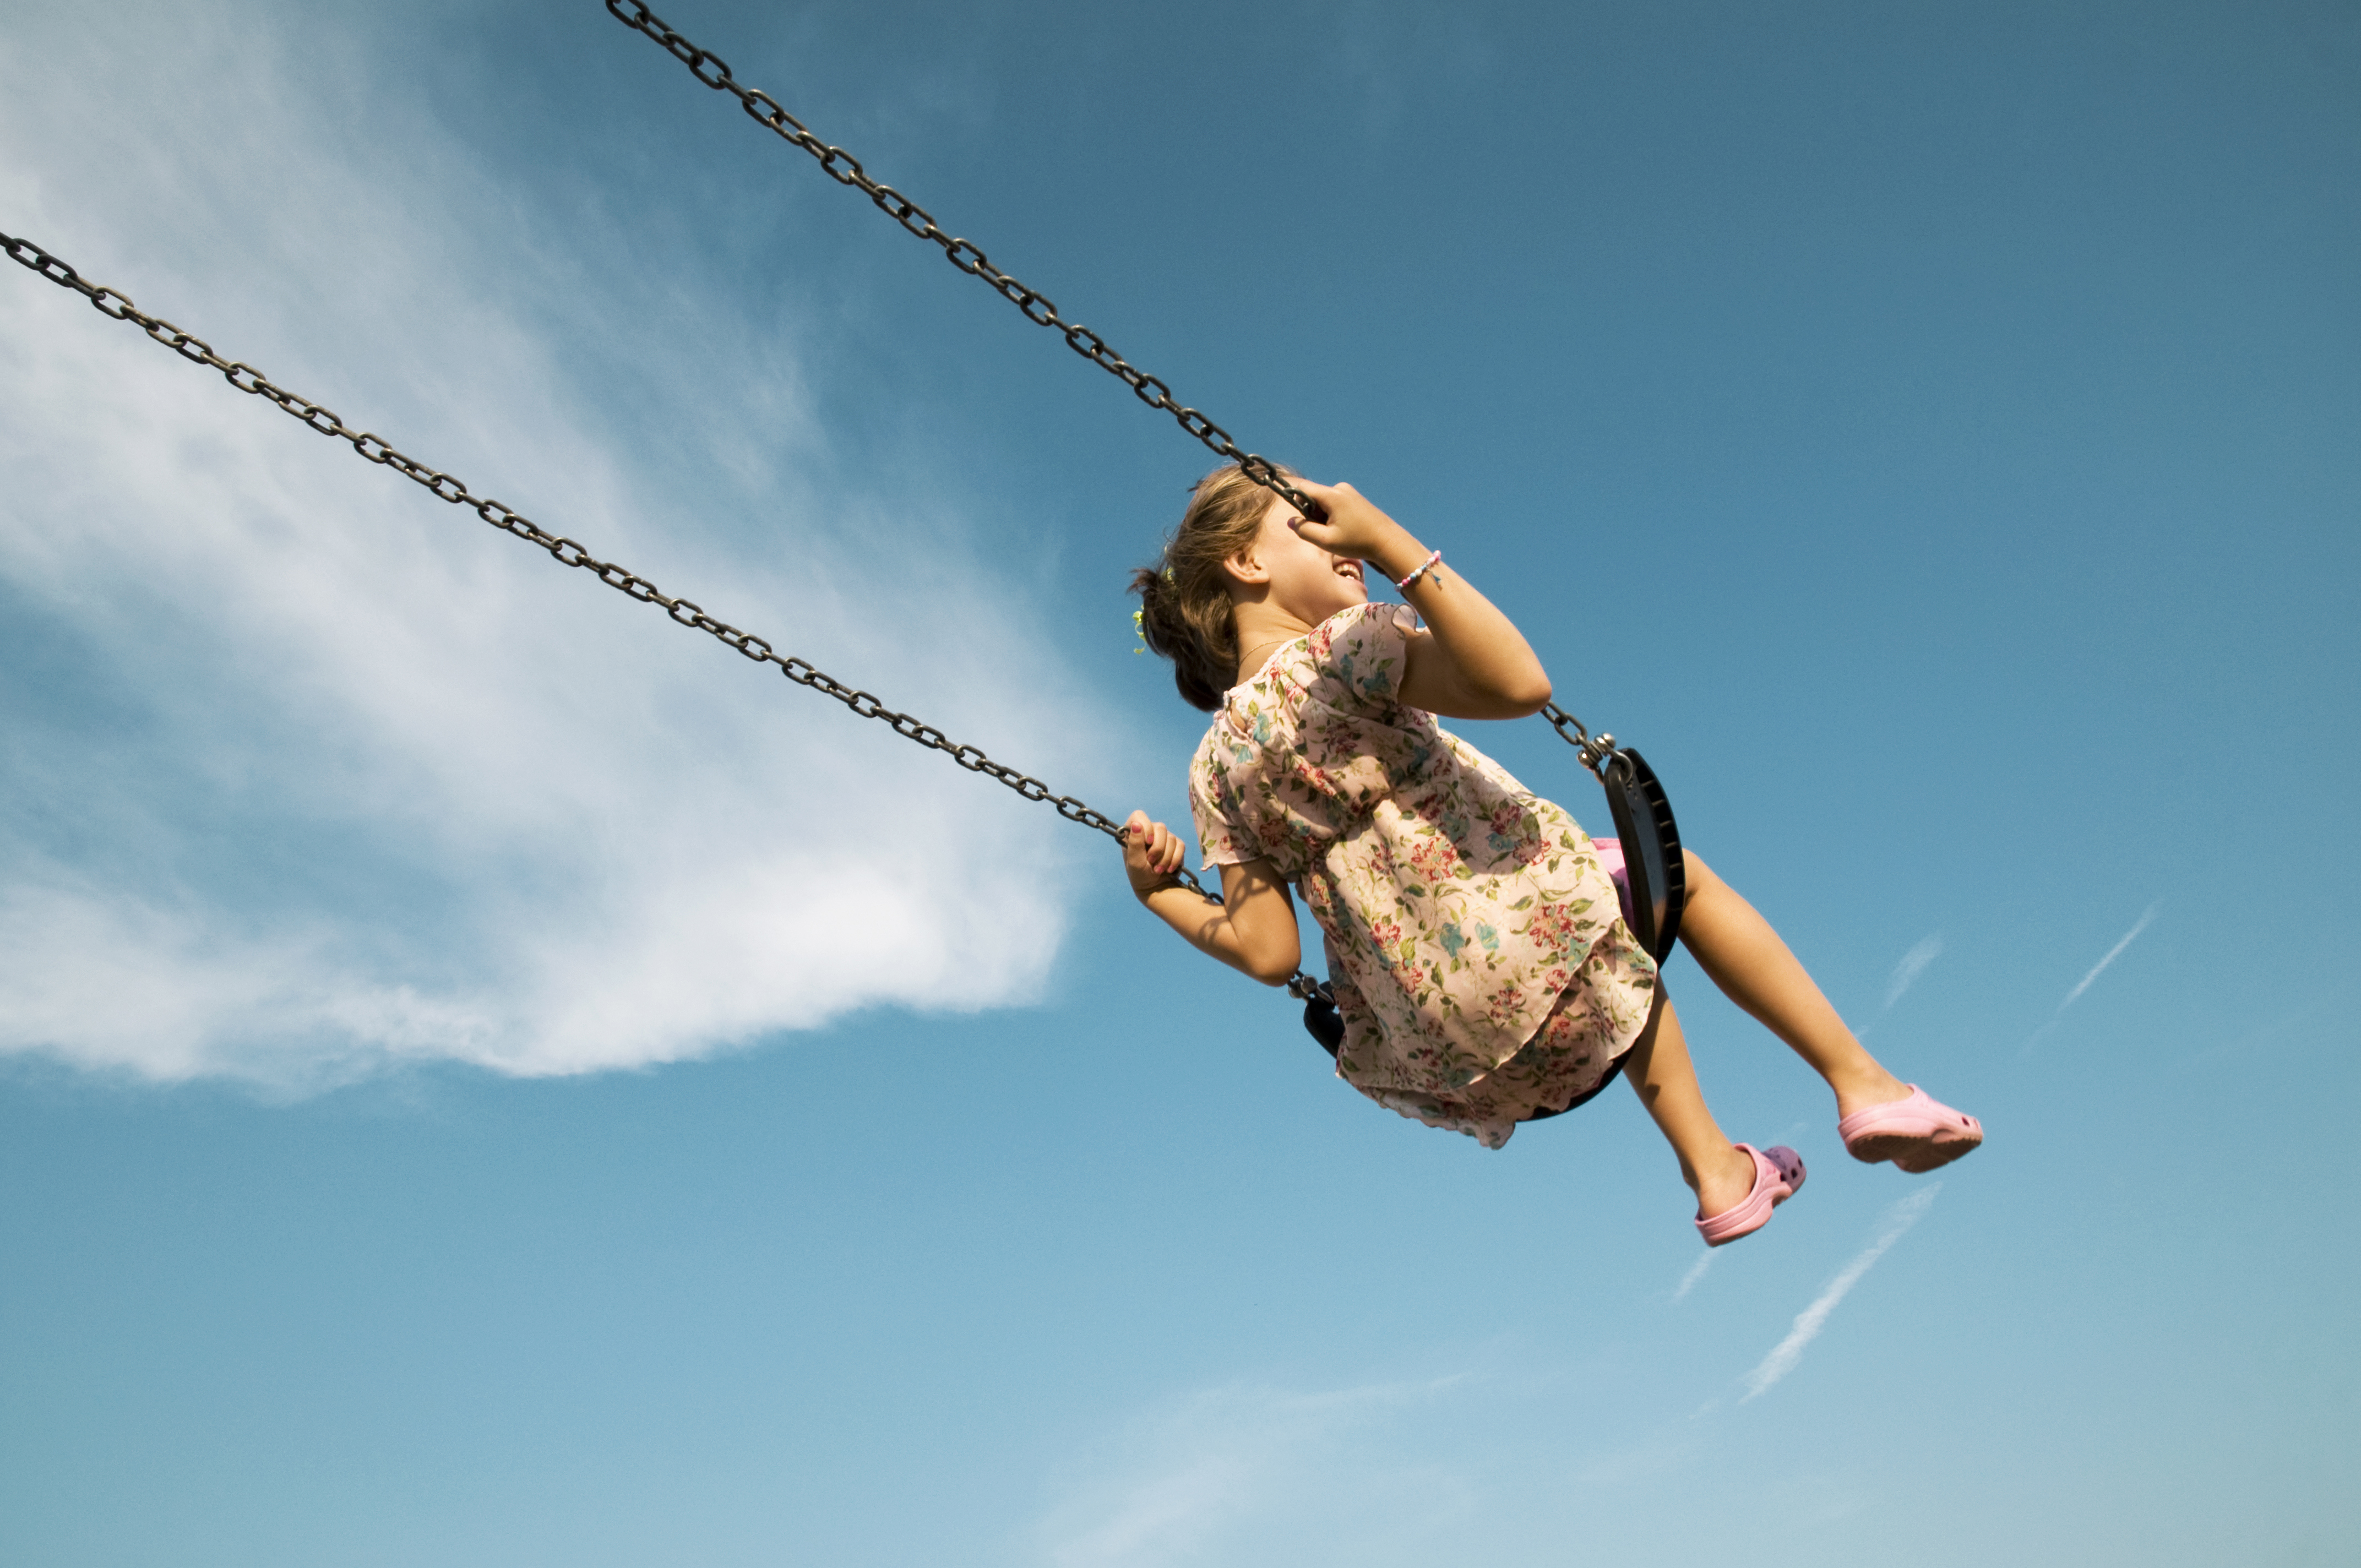 Foam Bubbles and Swing Sets … This Could Be Your Future